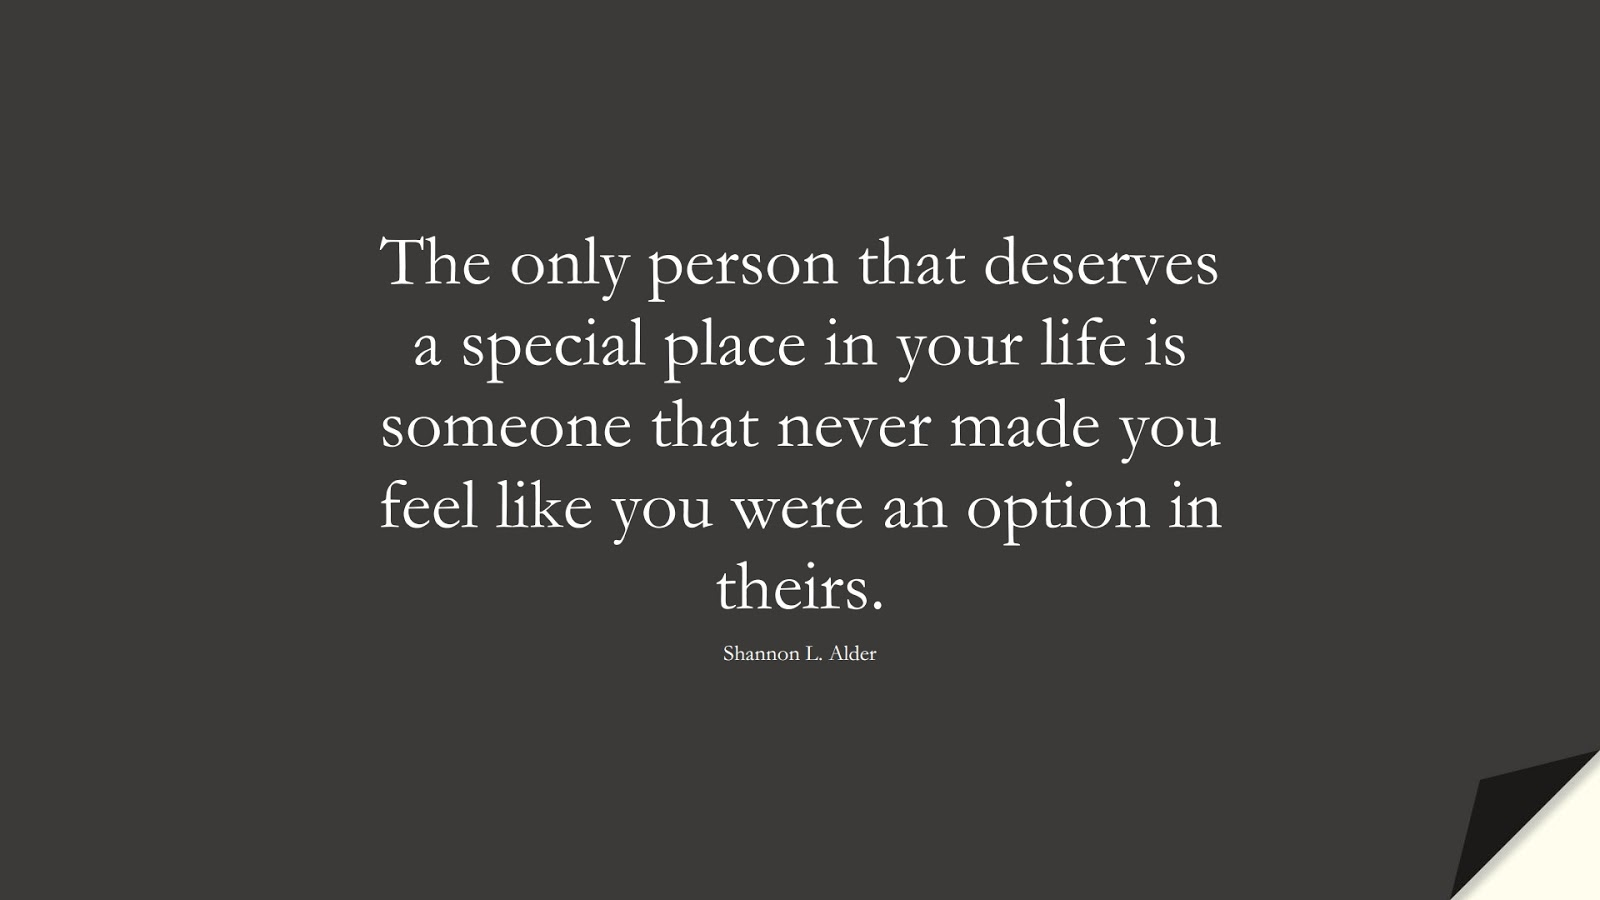 The only person that deserves a special place in your life is someone that never made you feel like you were an option in theirs. (Shannon L. Alder);  #SelfEsteemQuotes